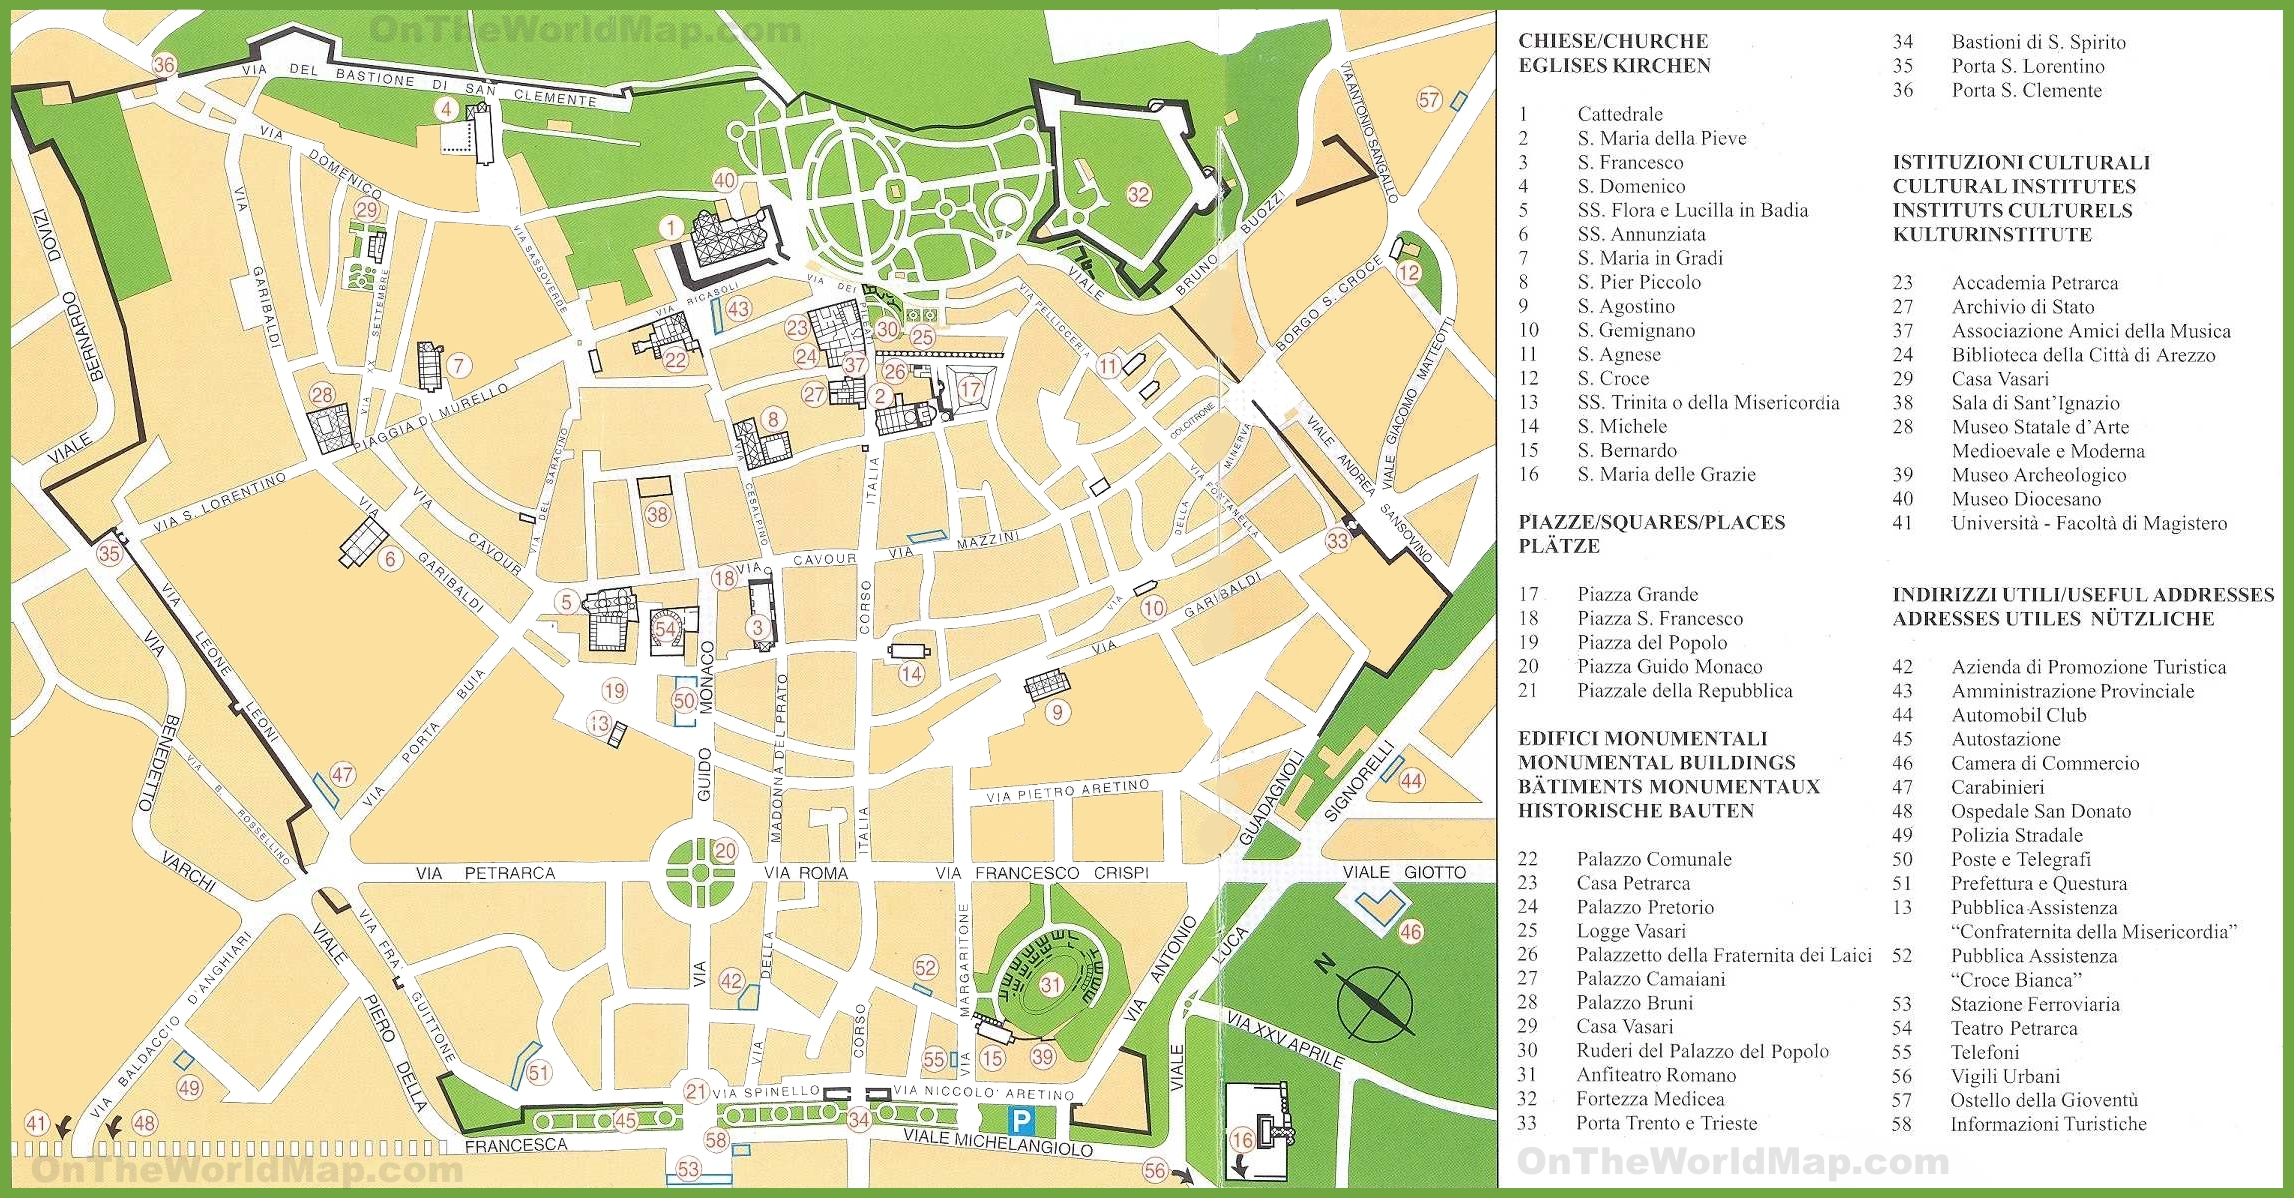 Arezzo tourist attractions map – Italy Tourist Attractions Map